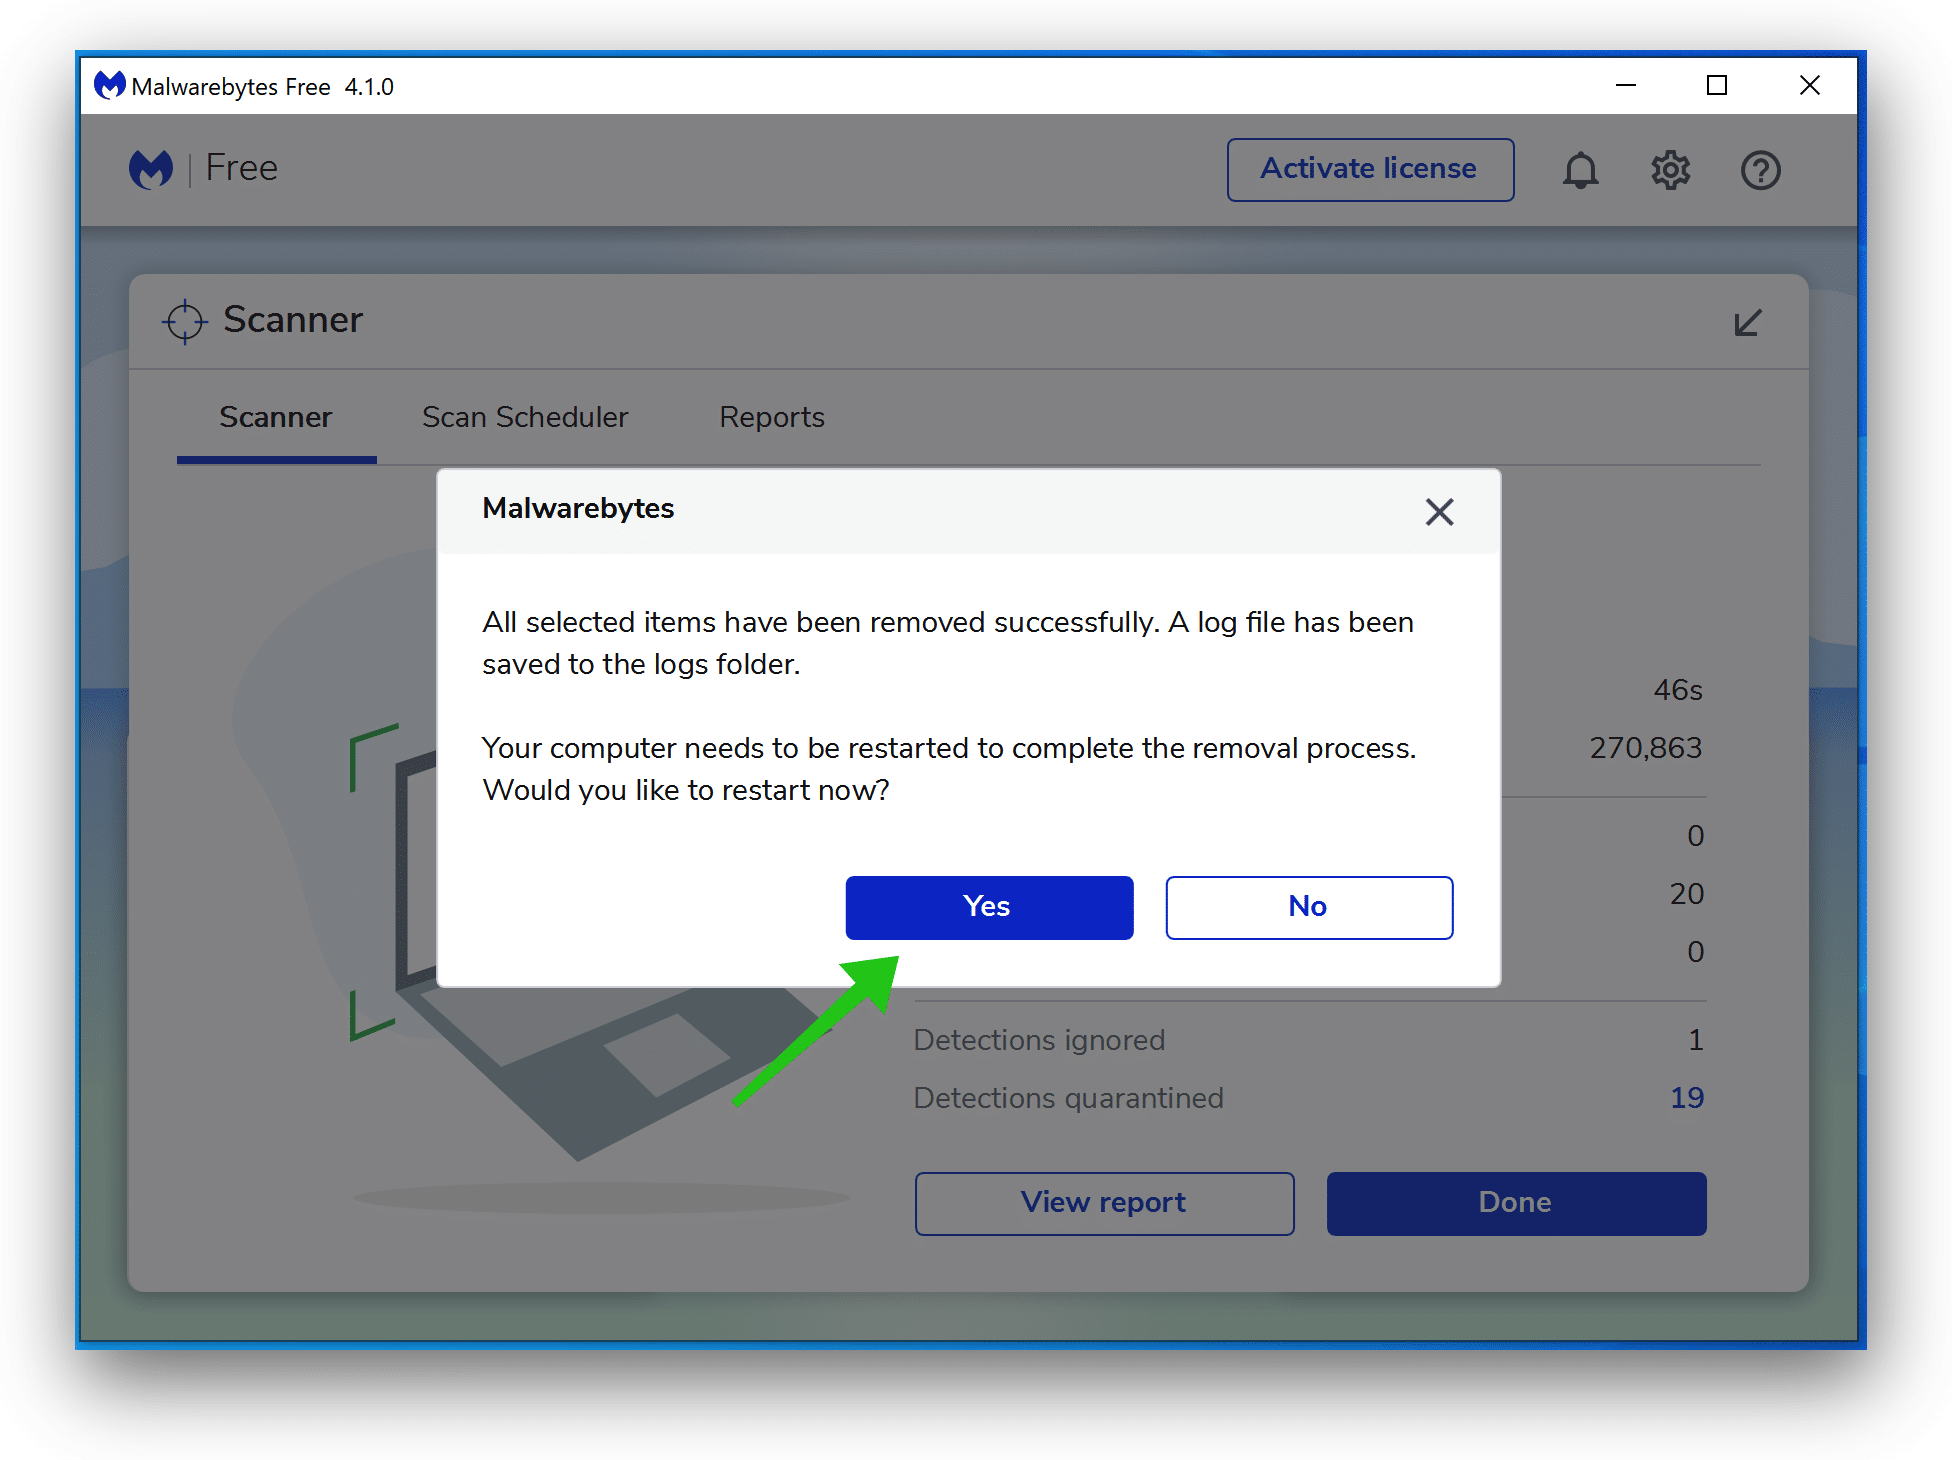 Reboot Windows - Malwarebytes